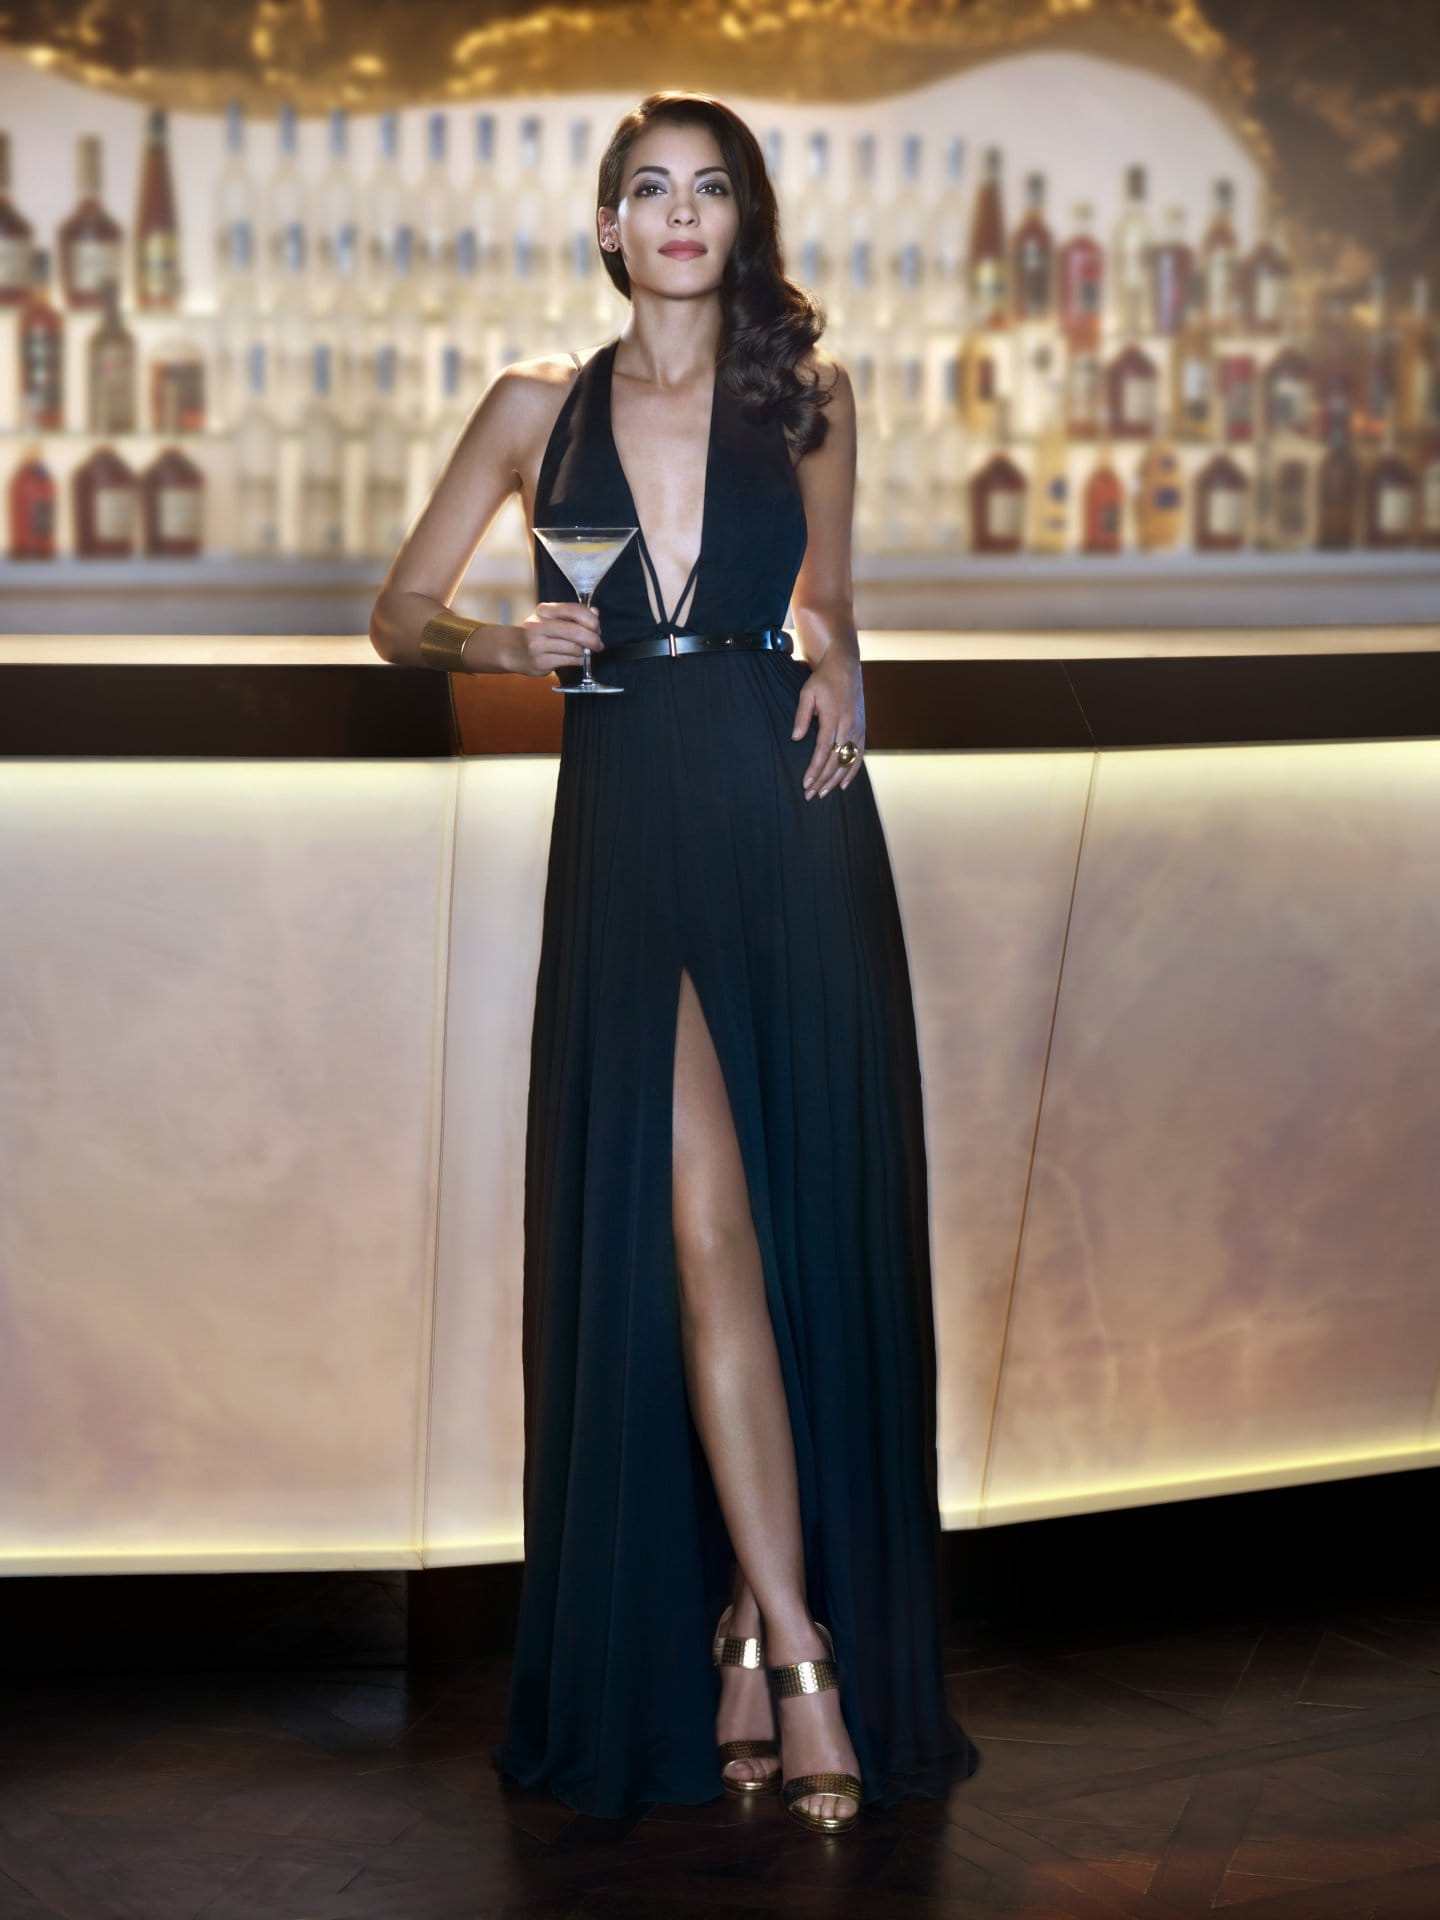 Belvedere vodka stephanie sigman visual 2